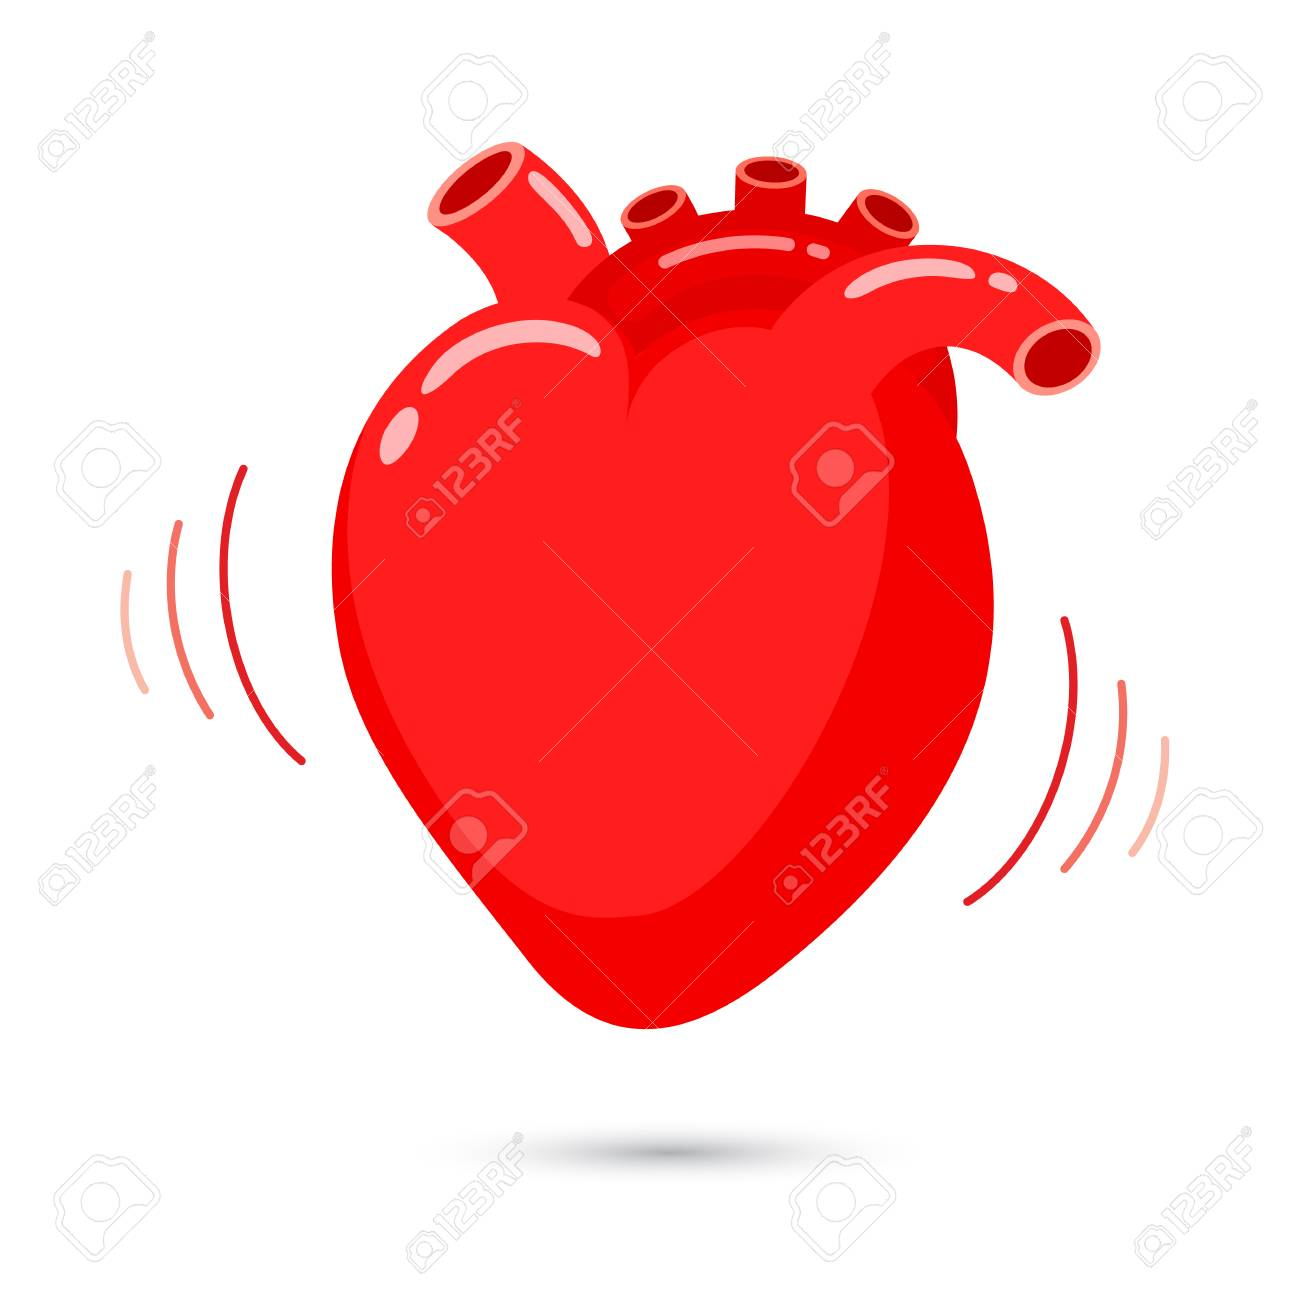 Human heart with beat design internal organ vector illustraion human heart with beat design internal organ vector illustraion isolated on white background stock ccuart Gallery